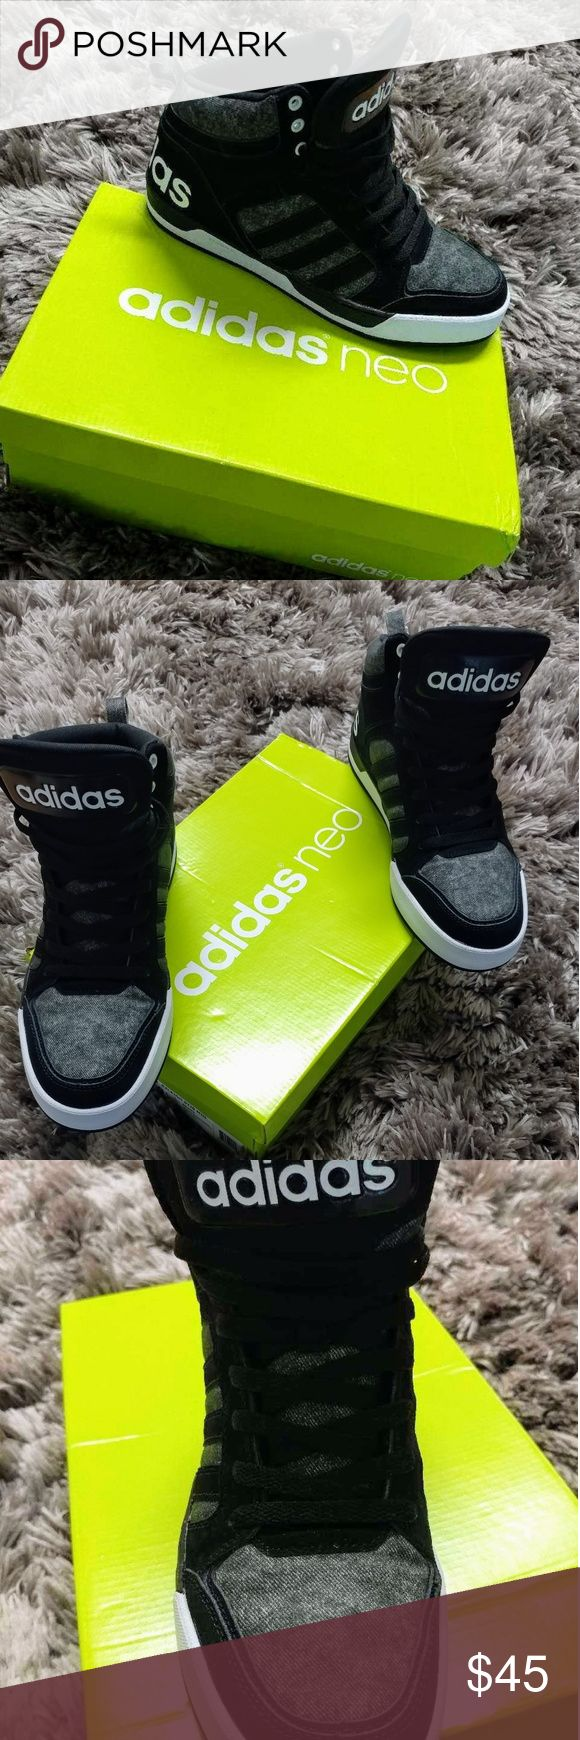 Men's Adidas Neo Raleigh 9TIS? condition:?new  Black/Grey mid top Adidas that has never been worn. * comfortable * athletic basketball shoe style * Lace-up front, * padded tongue and collar * Rubber traction outsole Adidas Shoes Sneakers